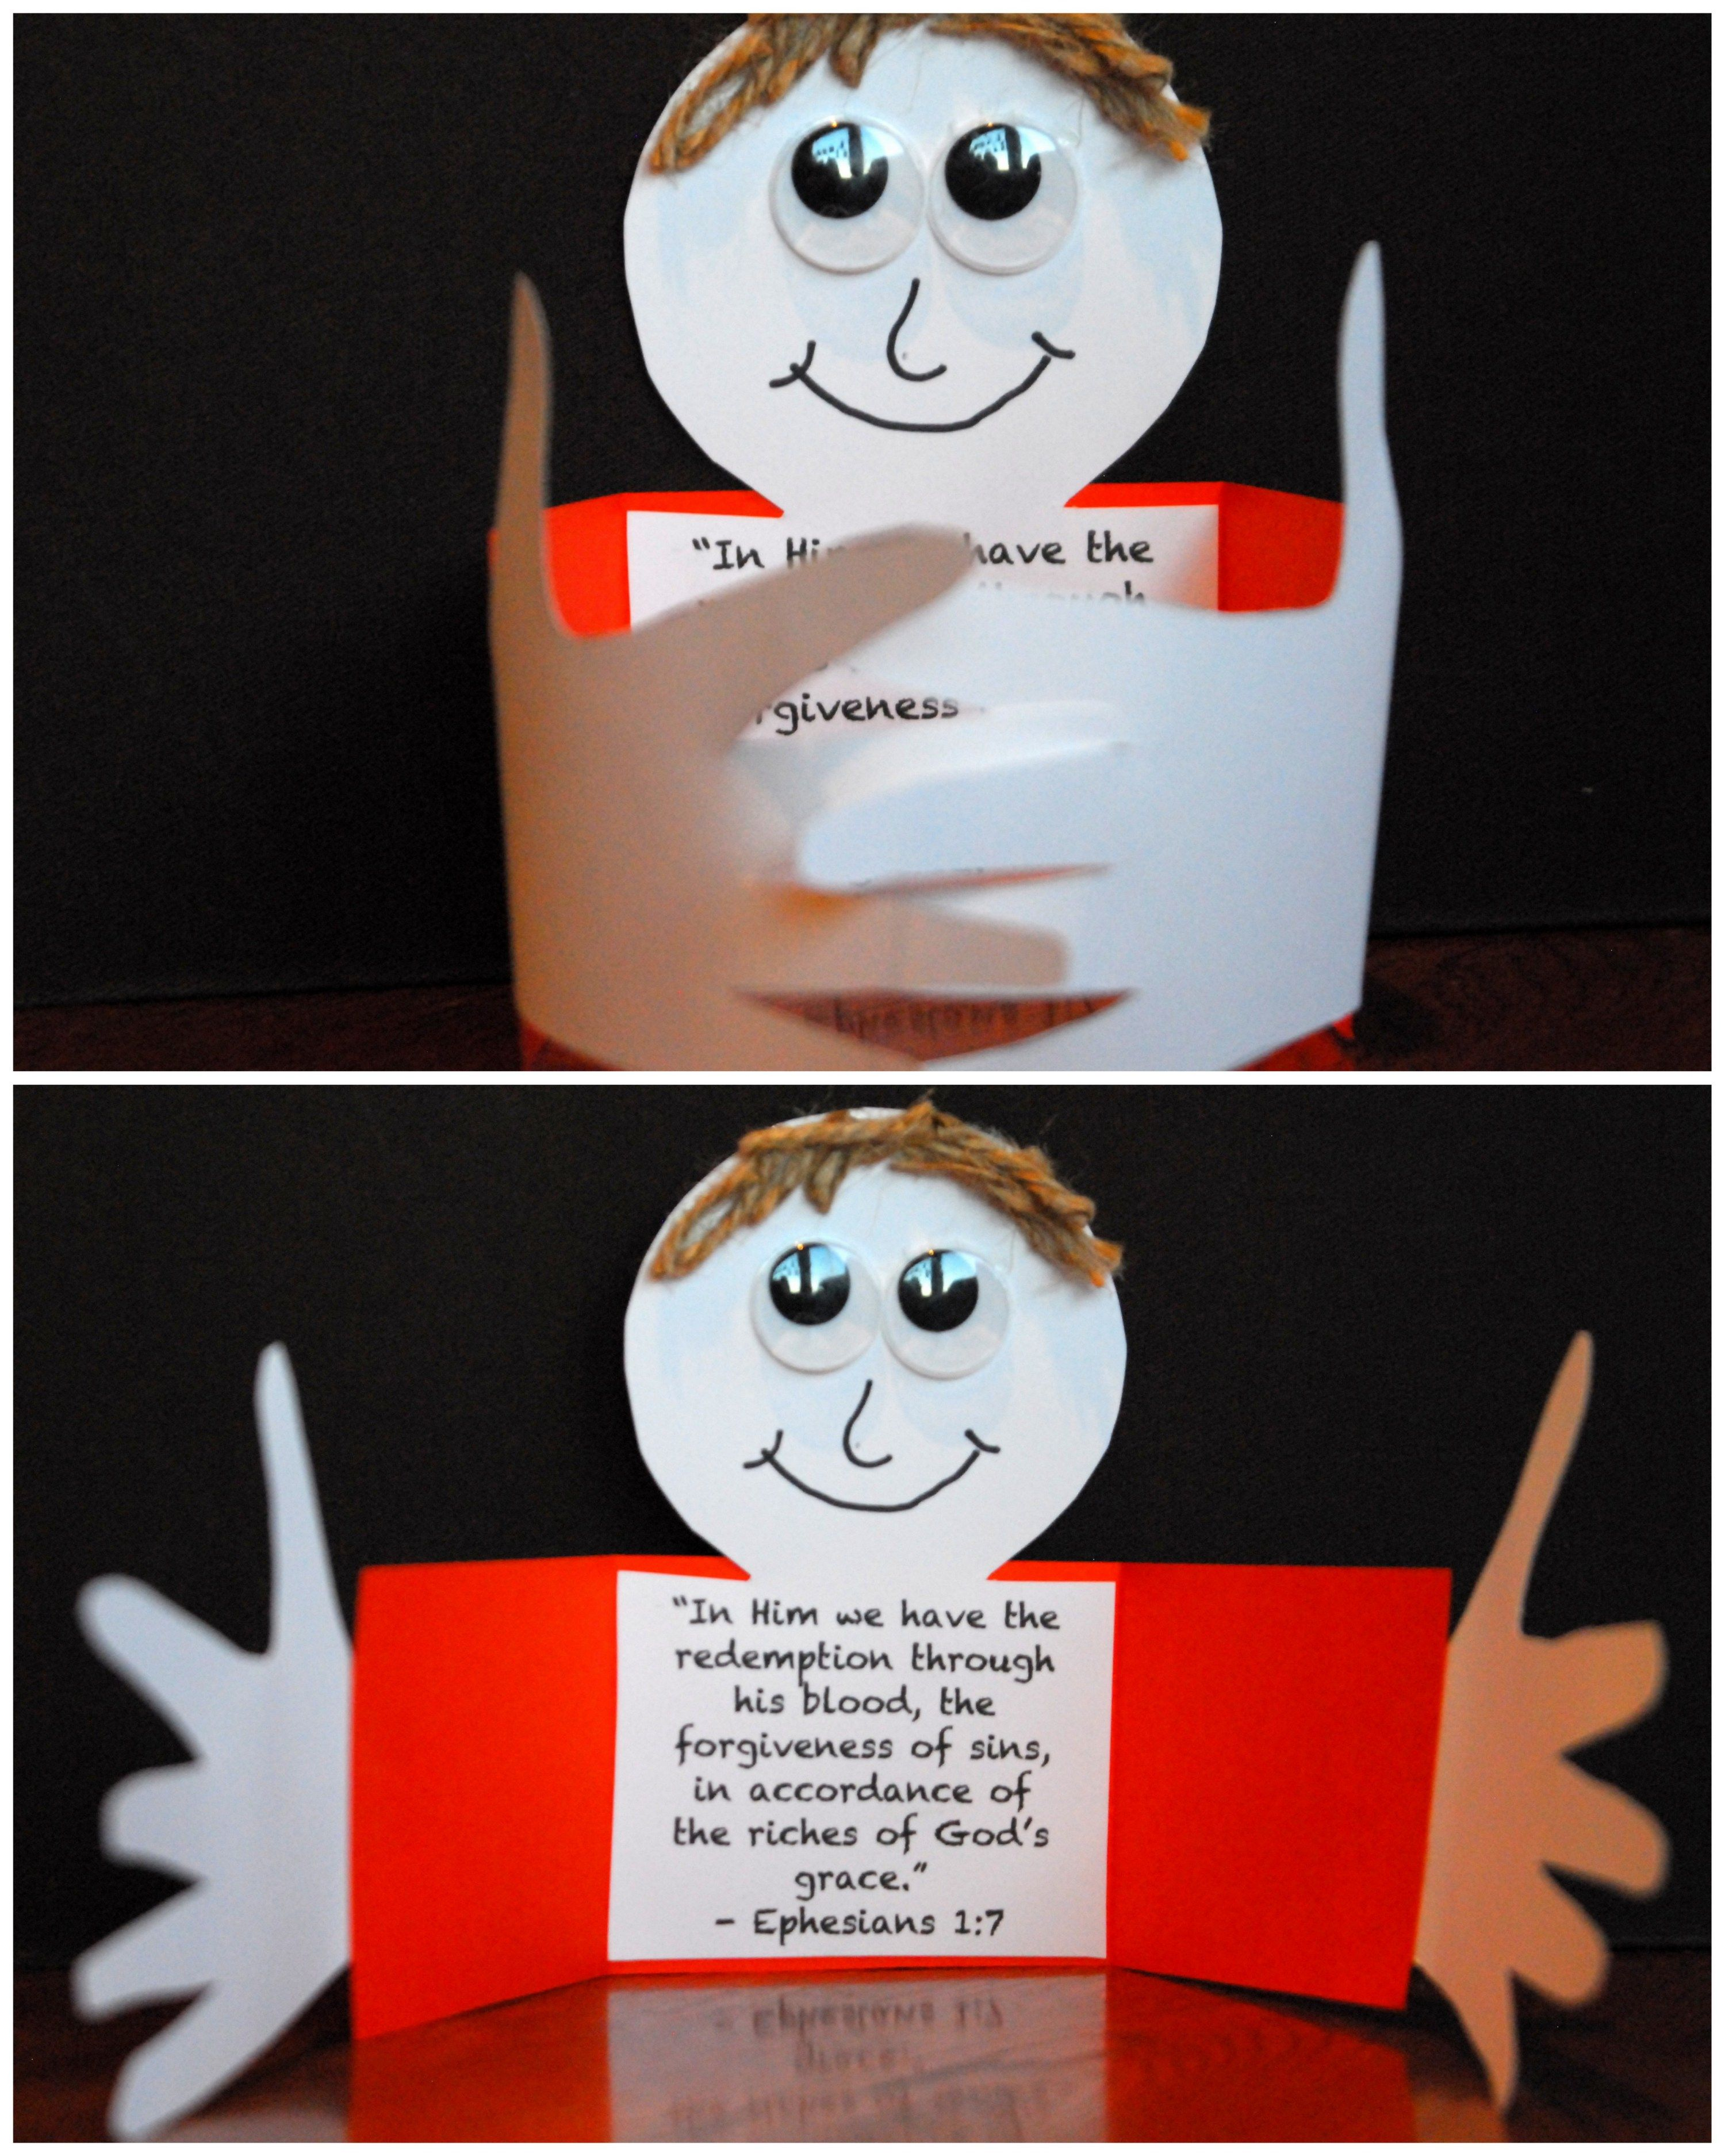 Vacation bible school crafts ideas - How To Teach Forgiveness To Kids Bible Lessons For Kids Christian Sunday School Ideas